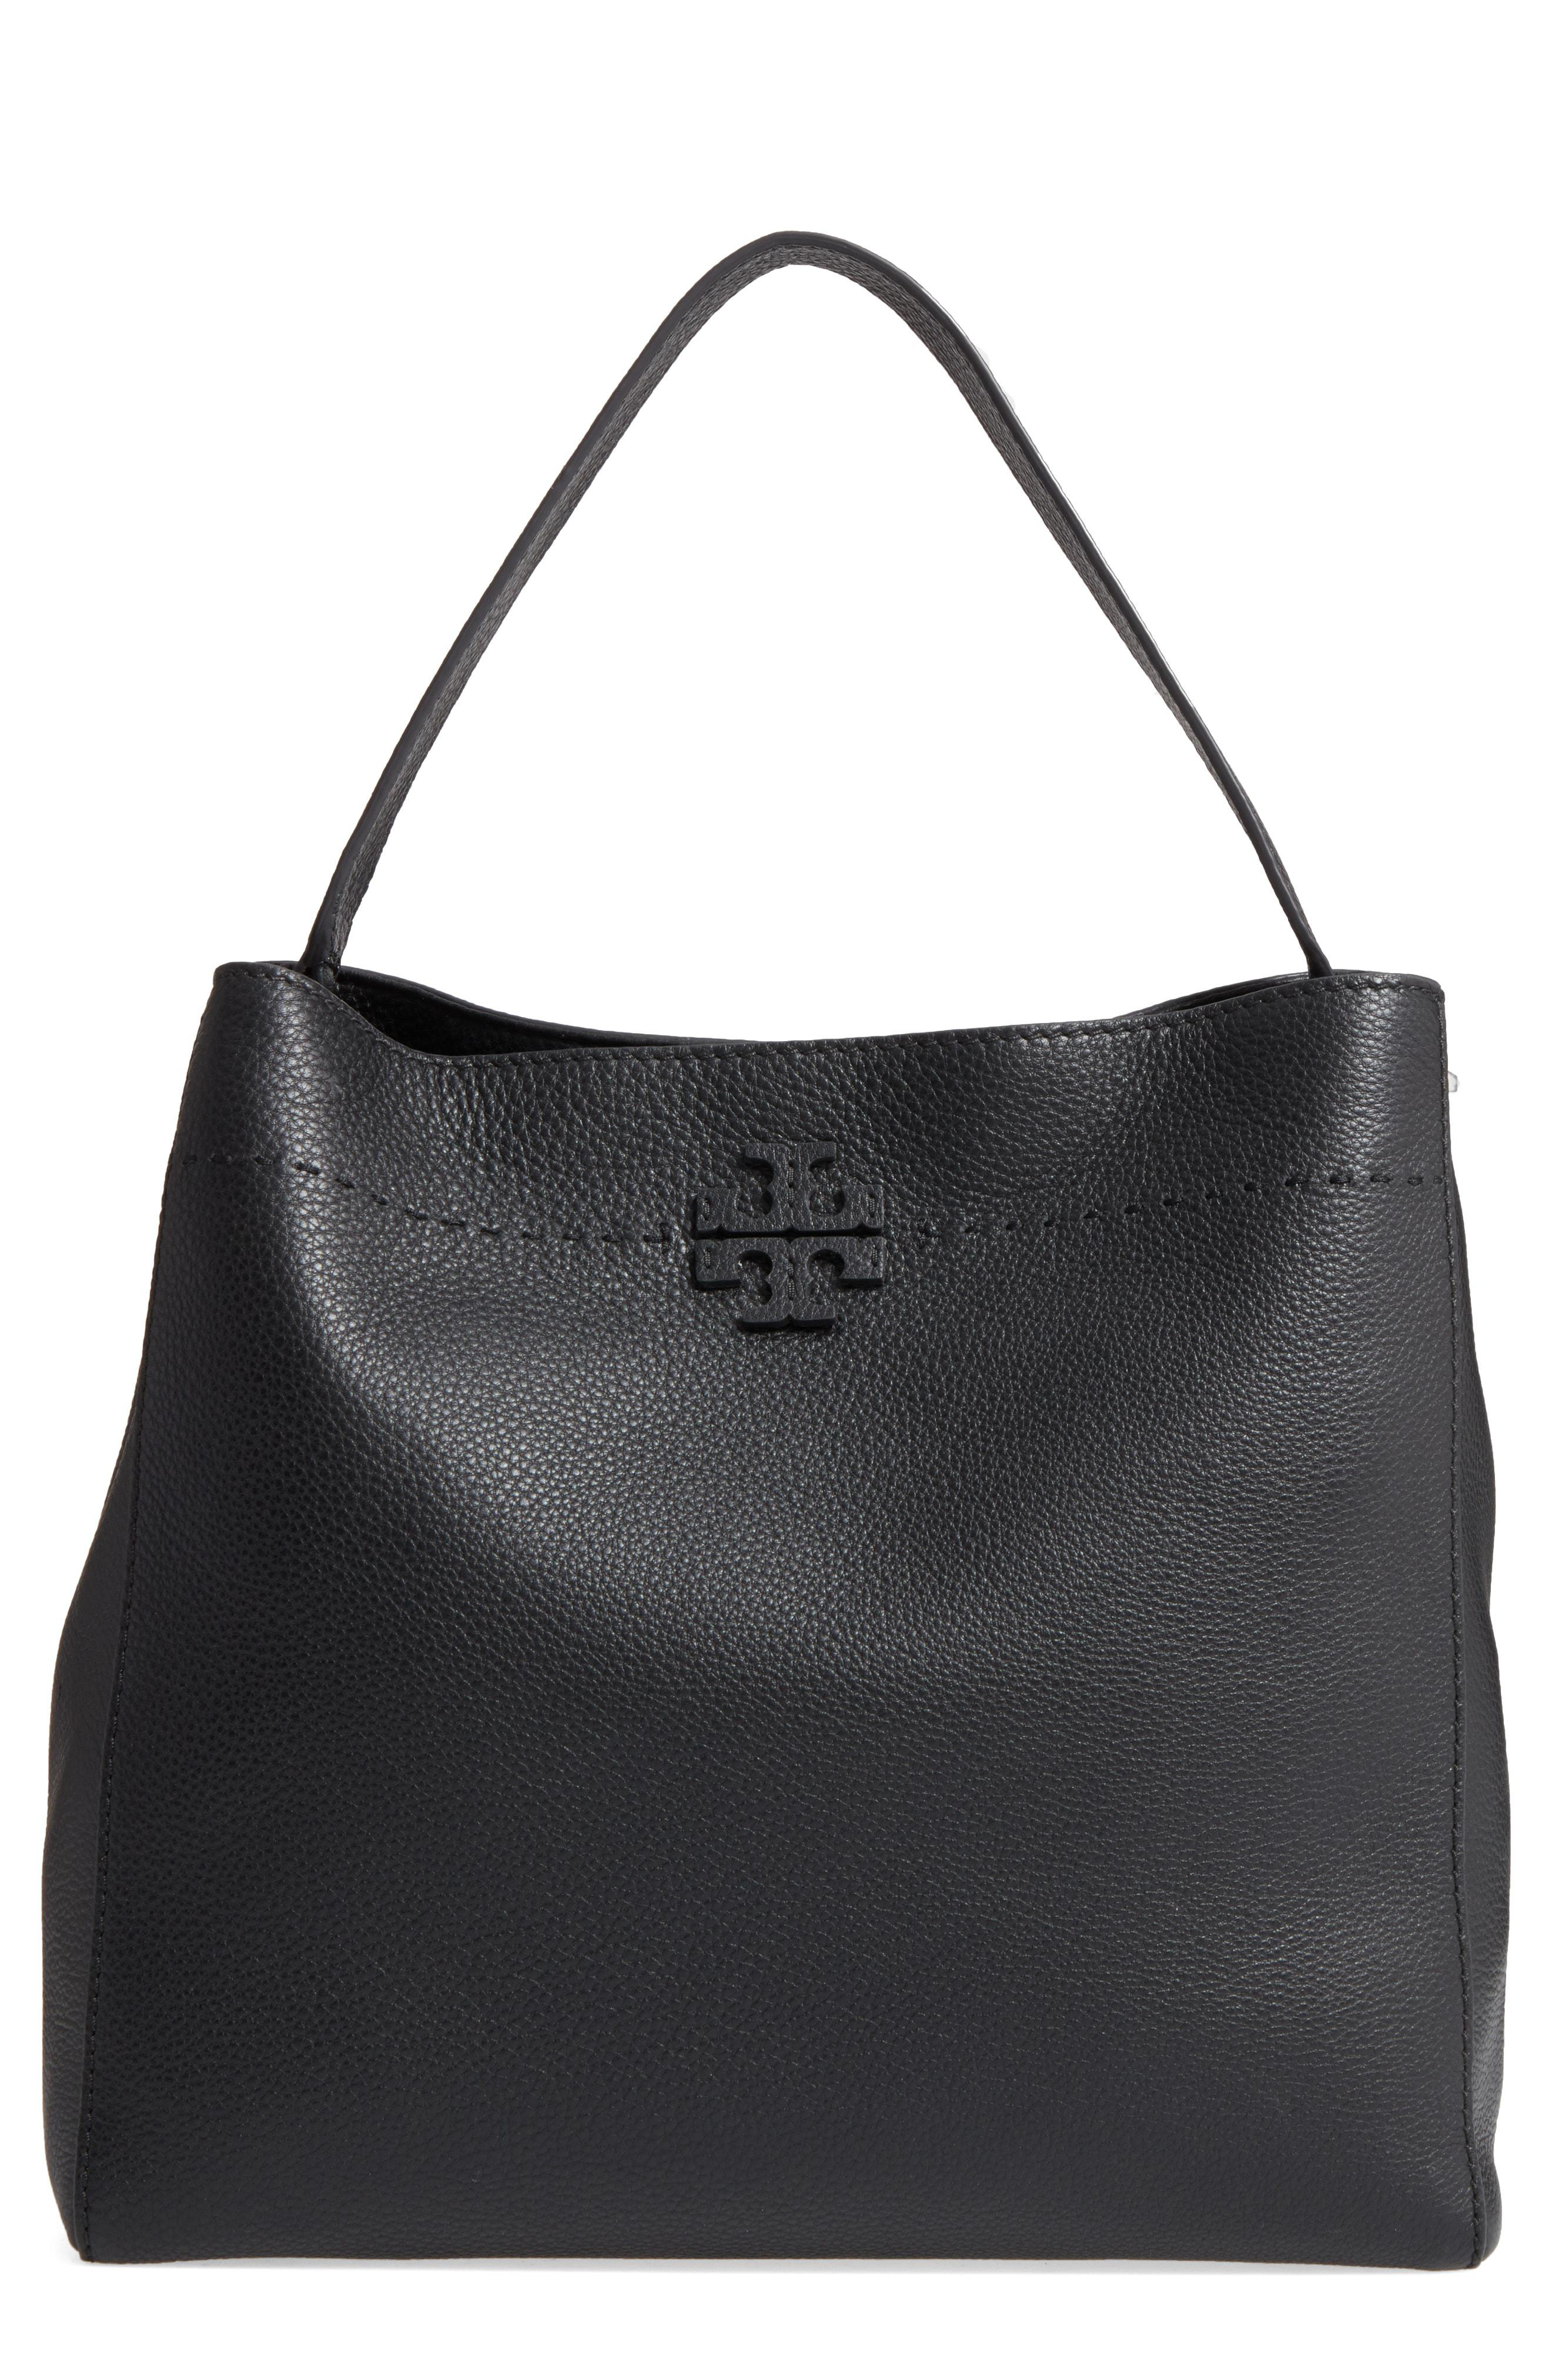 01051036a1347 Lyst - Tory Burch Mcgraw Leather Hobo in Black